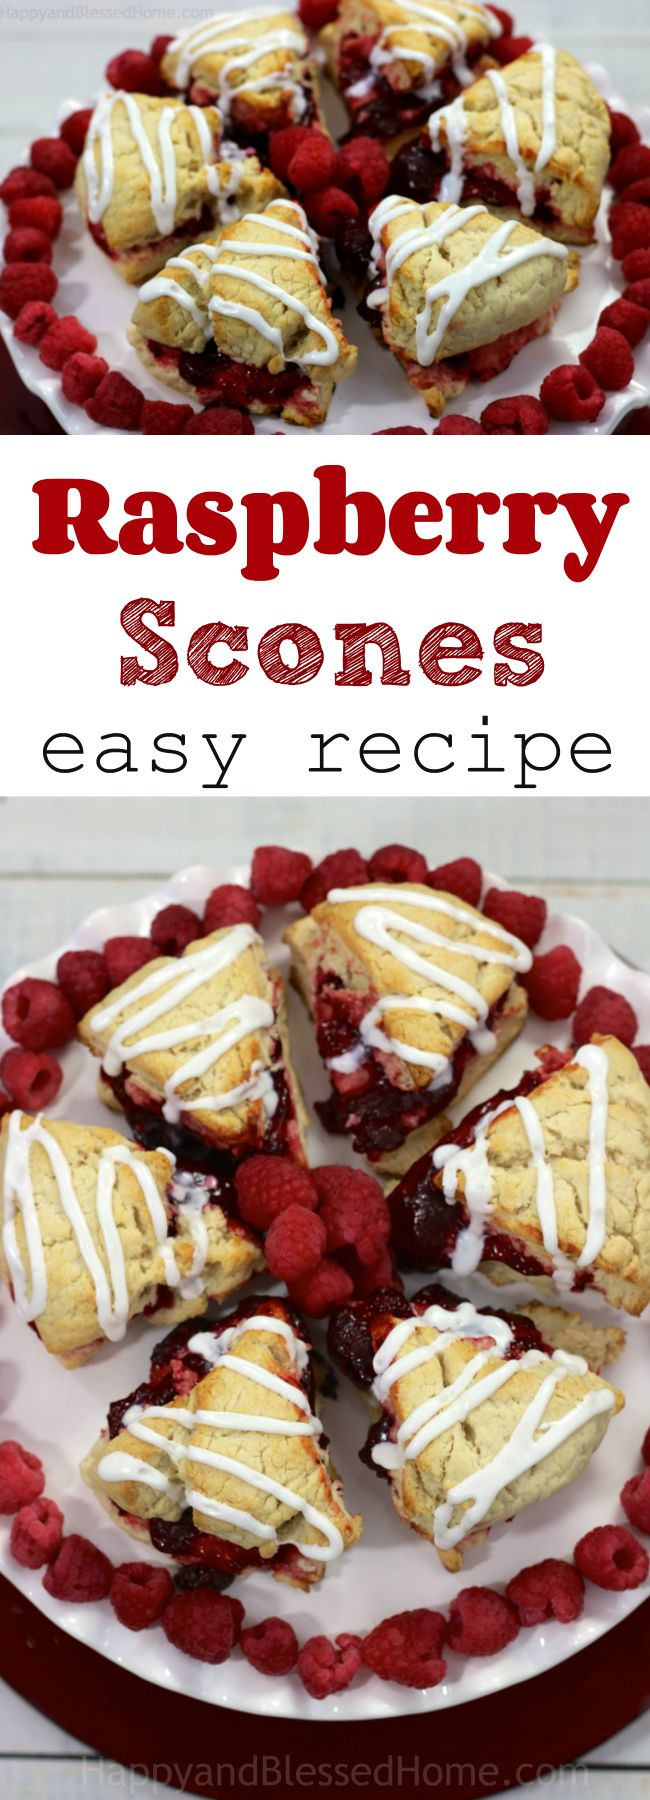 A dish pretty enough to decorate with - red and white raspberry scones! This easy recipe is perfect for holiday entertaining. I love the Christmas colors used here - including fresh raspberries and a super soft, buttery scone. Yummy!